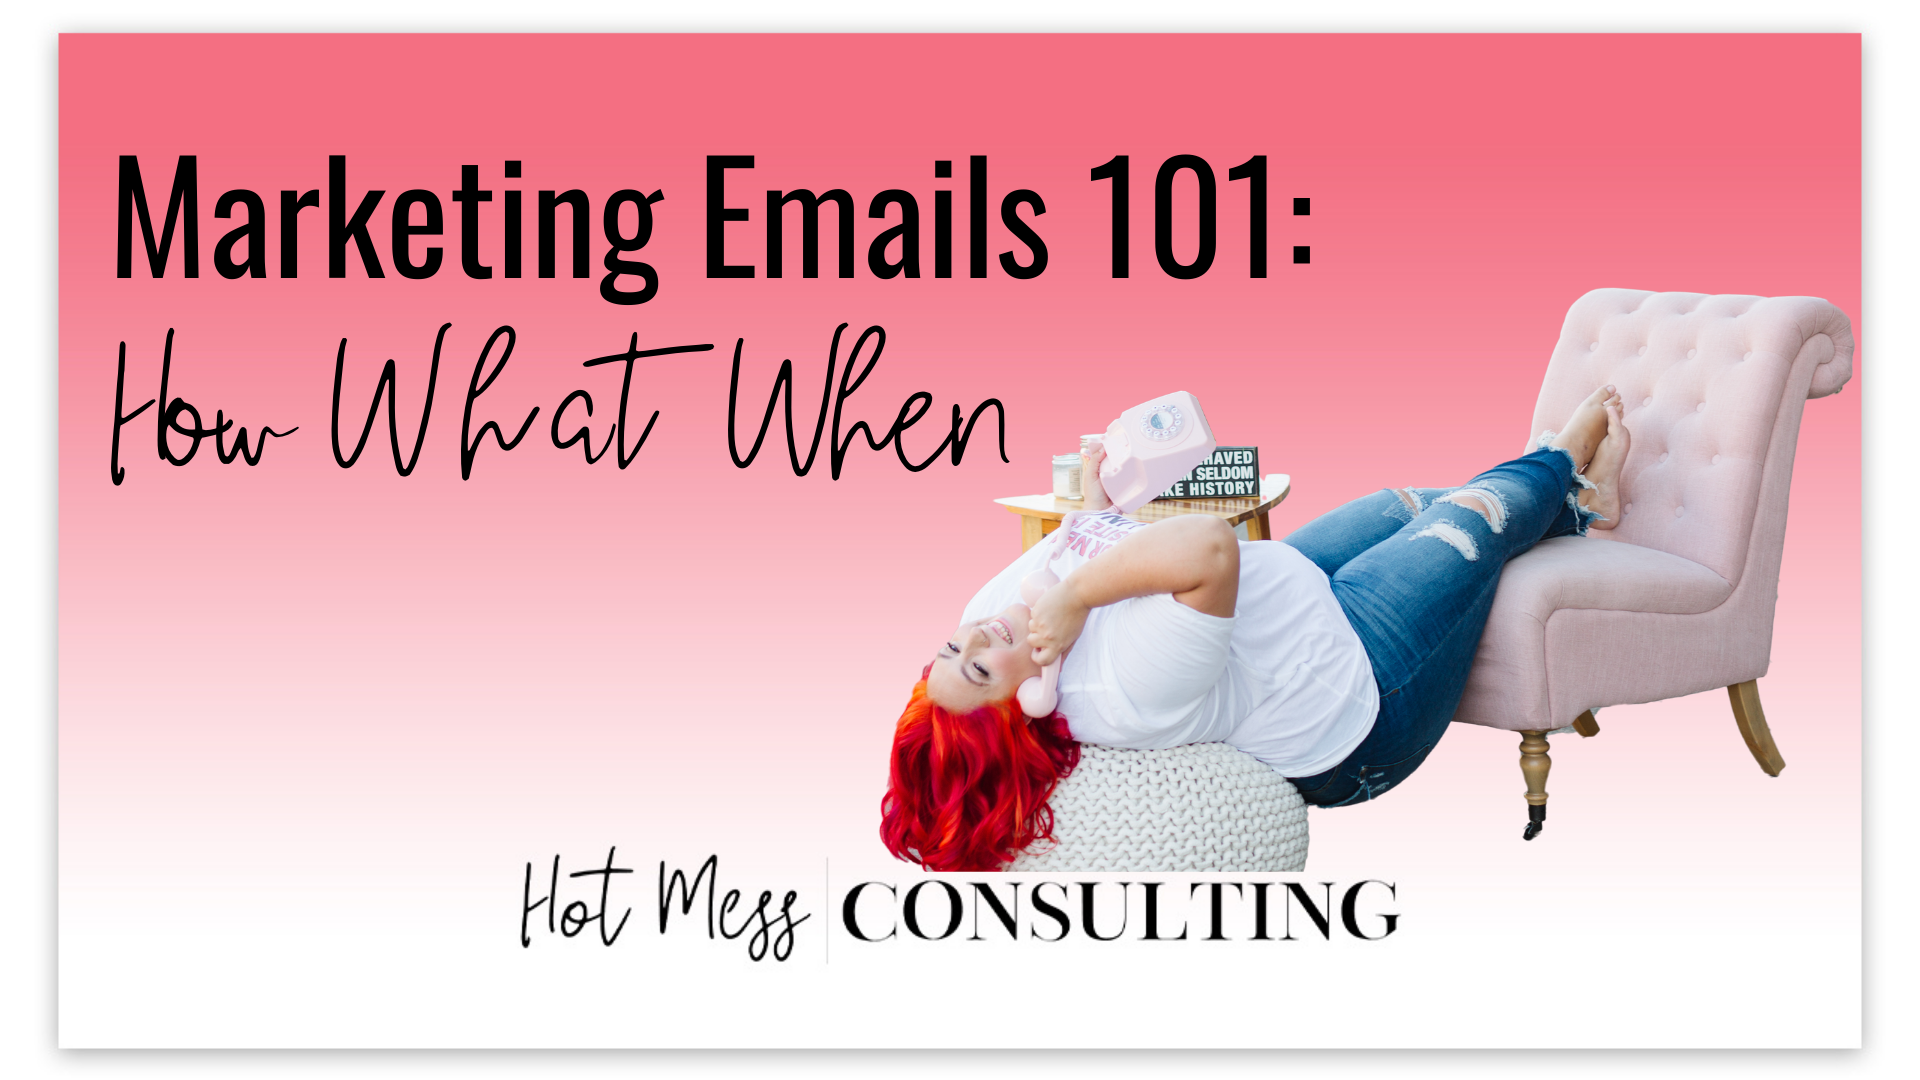 Boutique Marketing Emails 101: How, What, When!